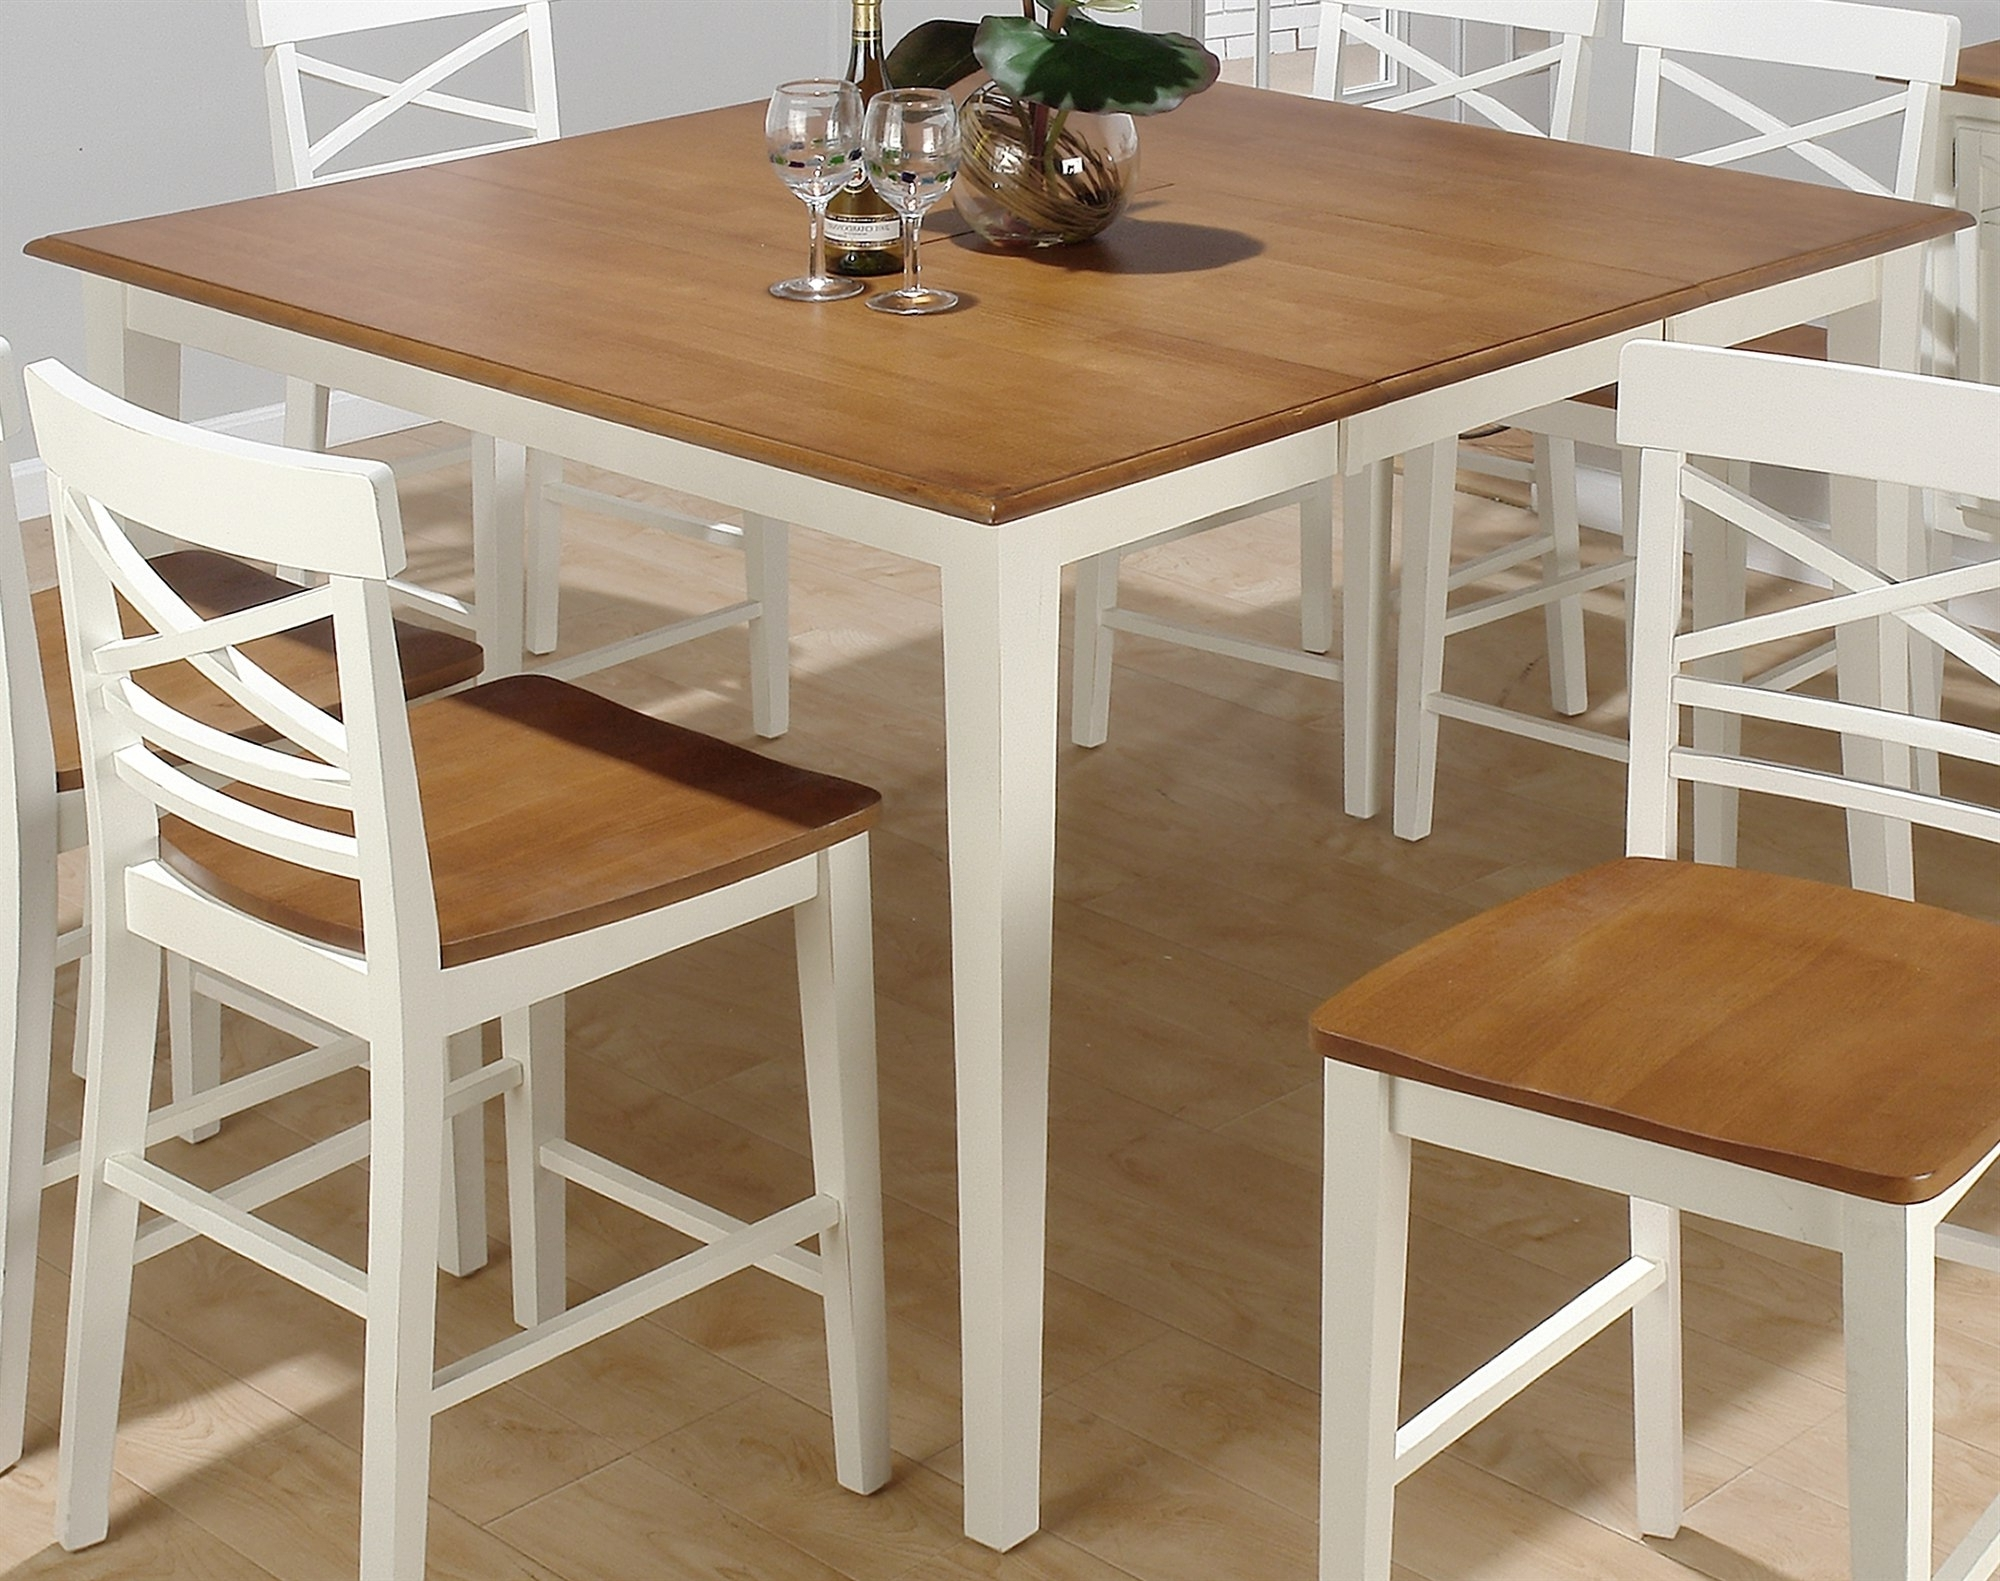 Preferred Square Extendable Dining Tables And Chairs Intended For Square Kitchen Table And 4 Chairs • Kitchen Chairs Ideas (View 19 of 25)